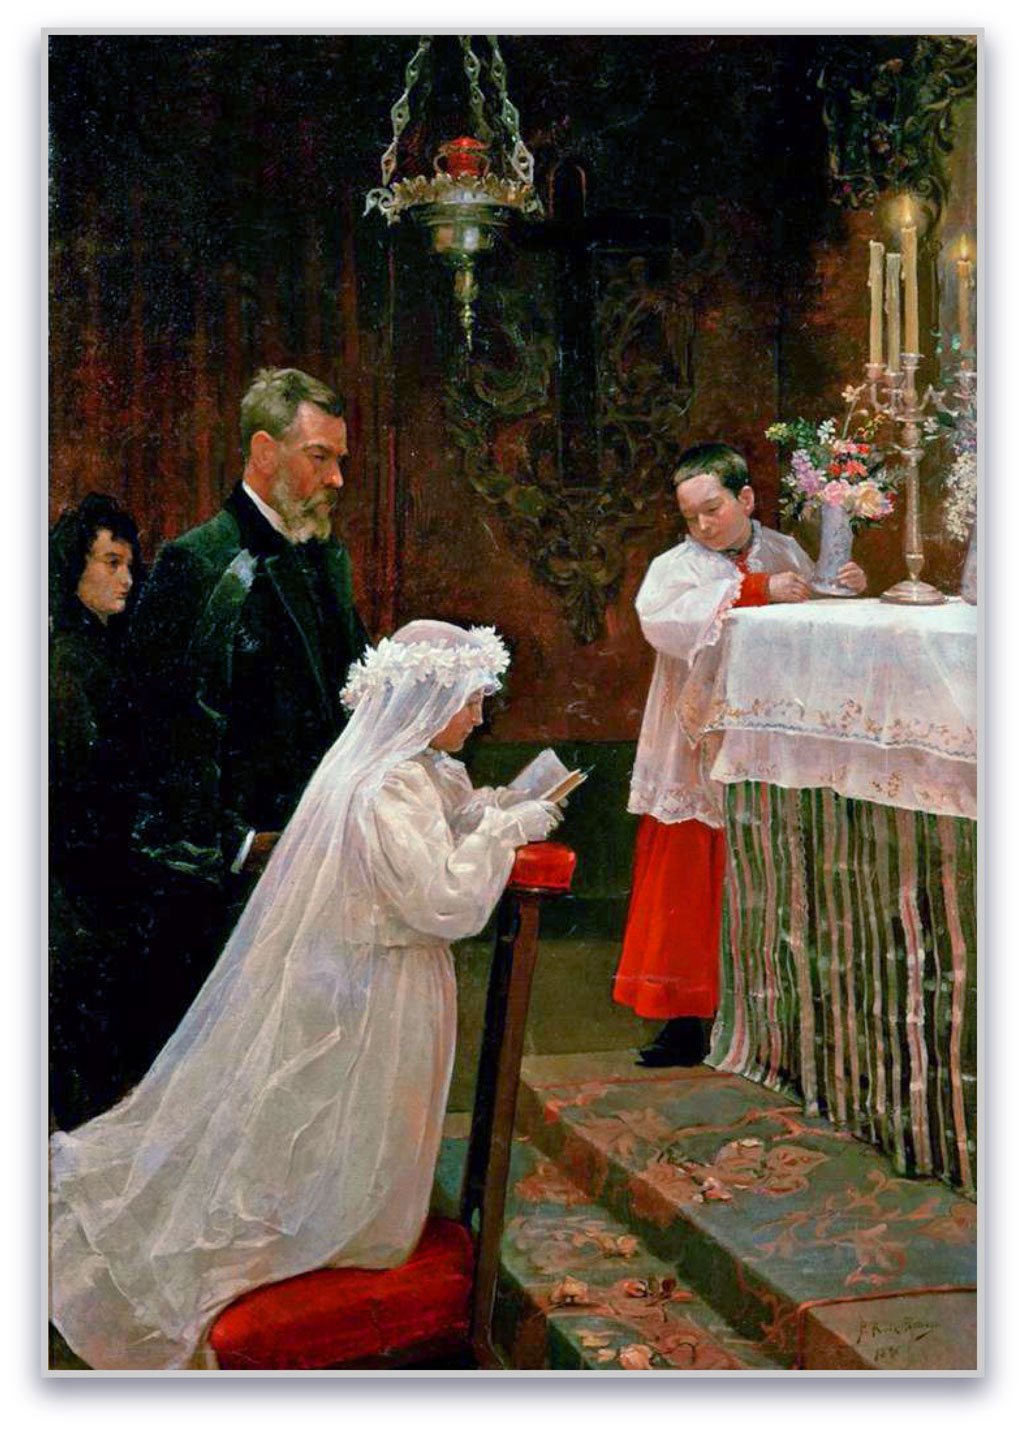 First Communion: 1896, 118 x 166 cm